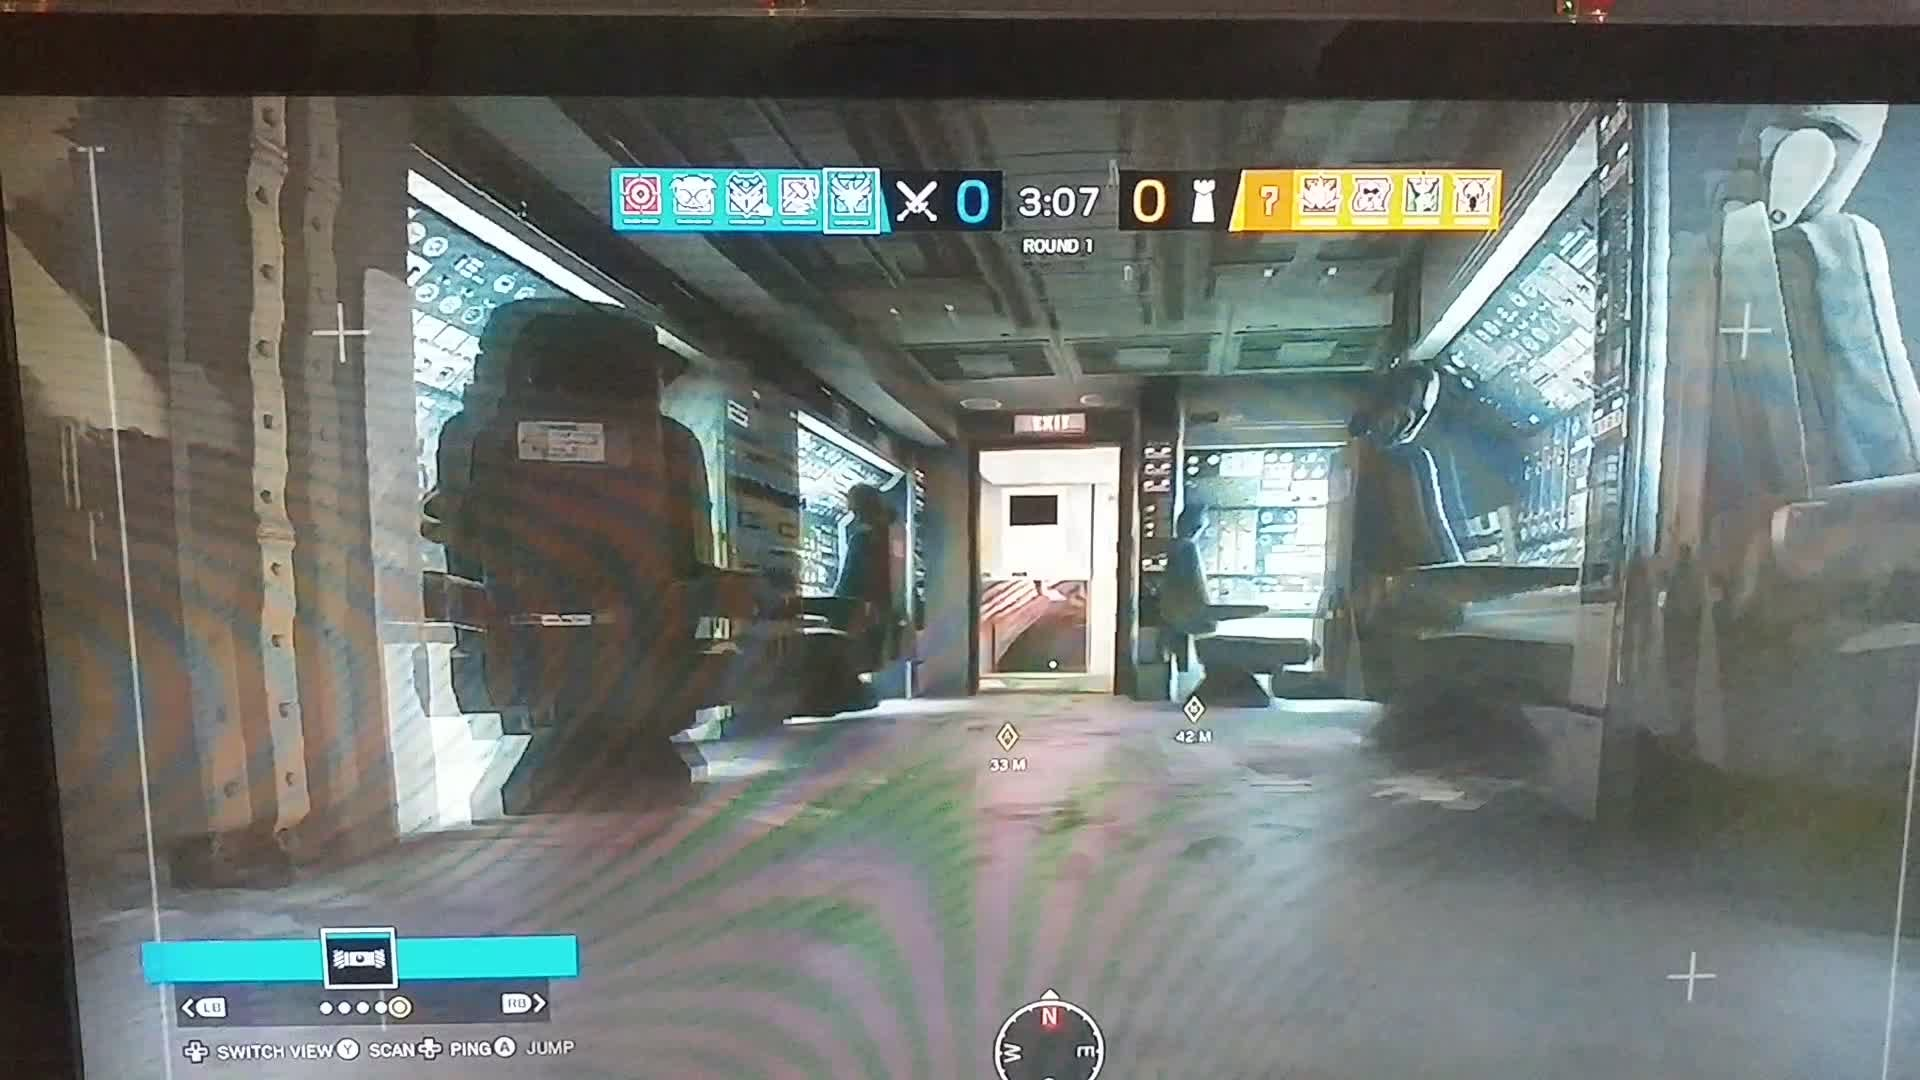 Rainbow Six: General - I clutched a round and got my first ace with Zofia video cover image 1